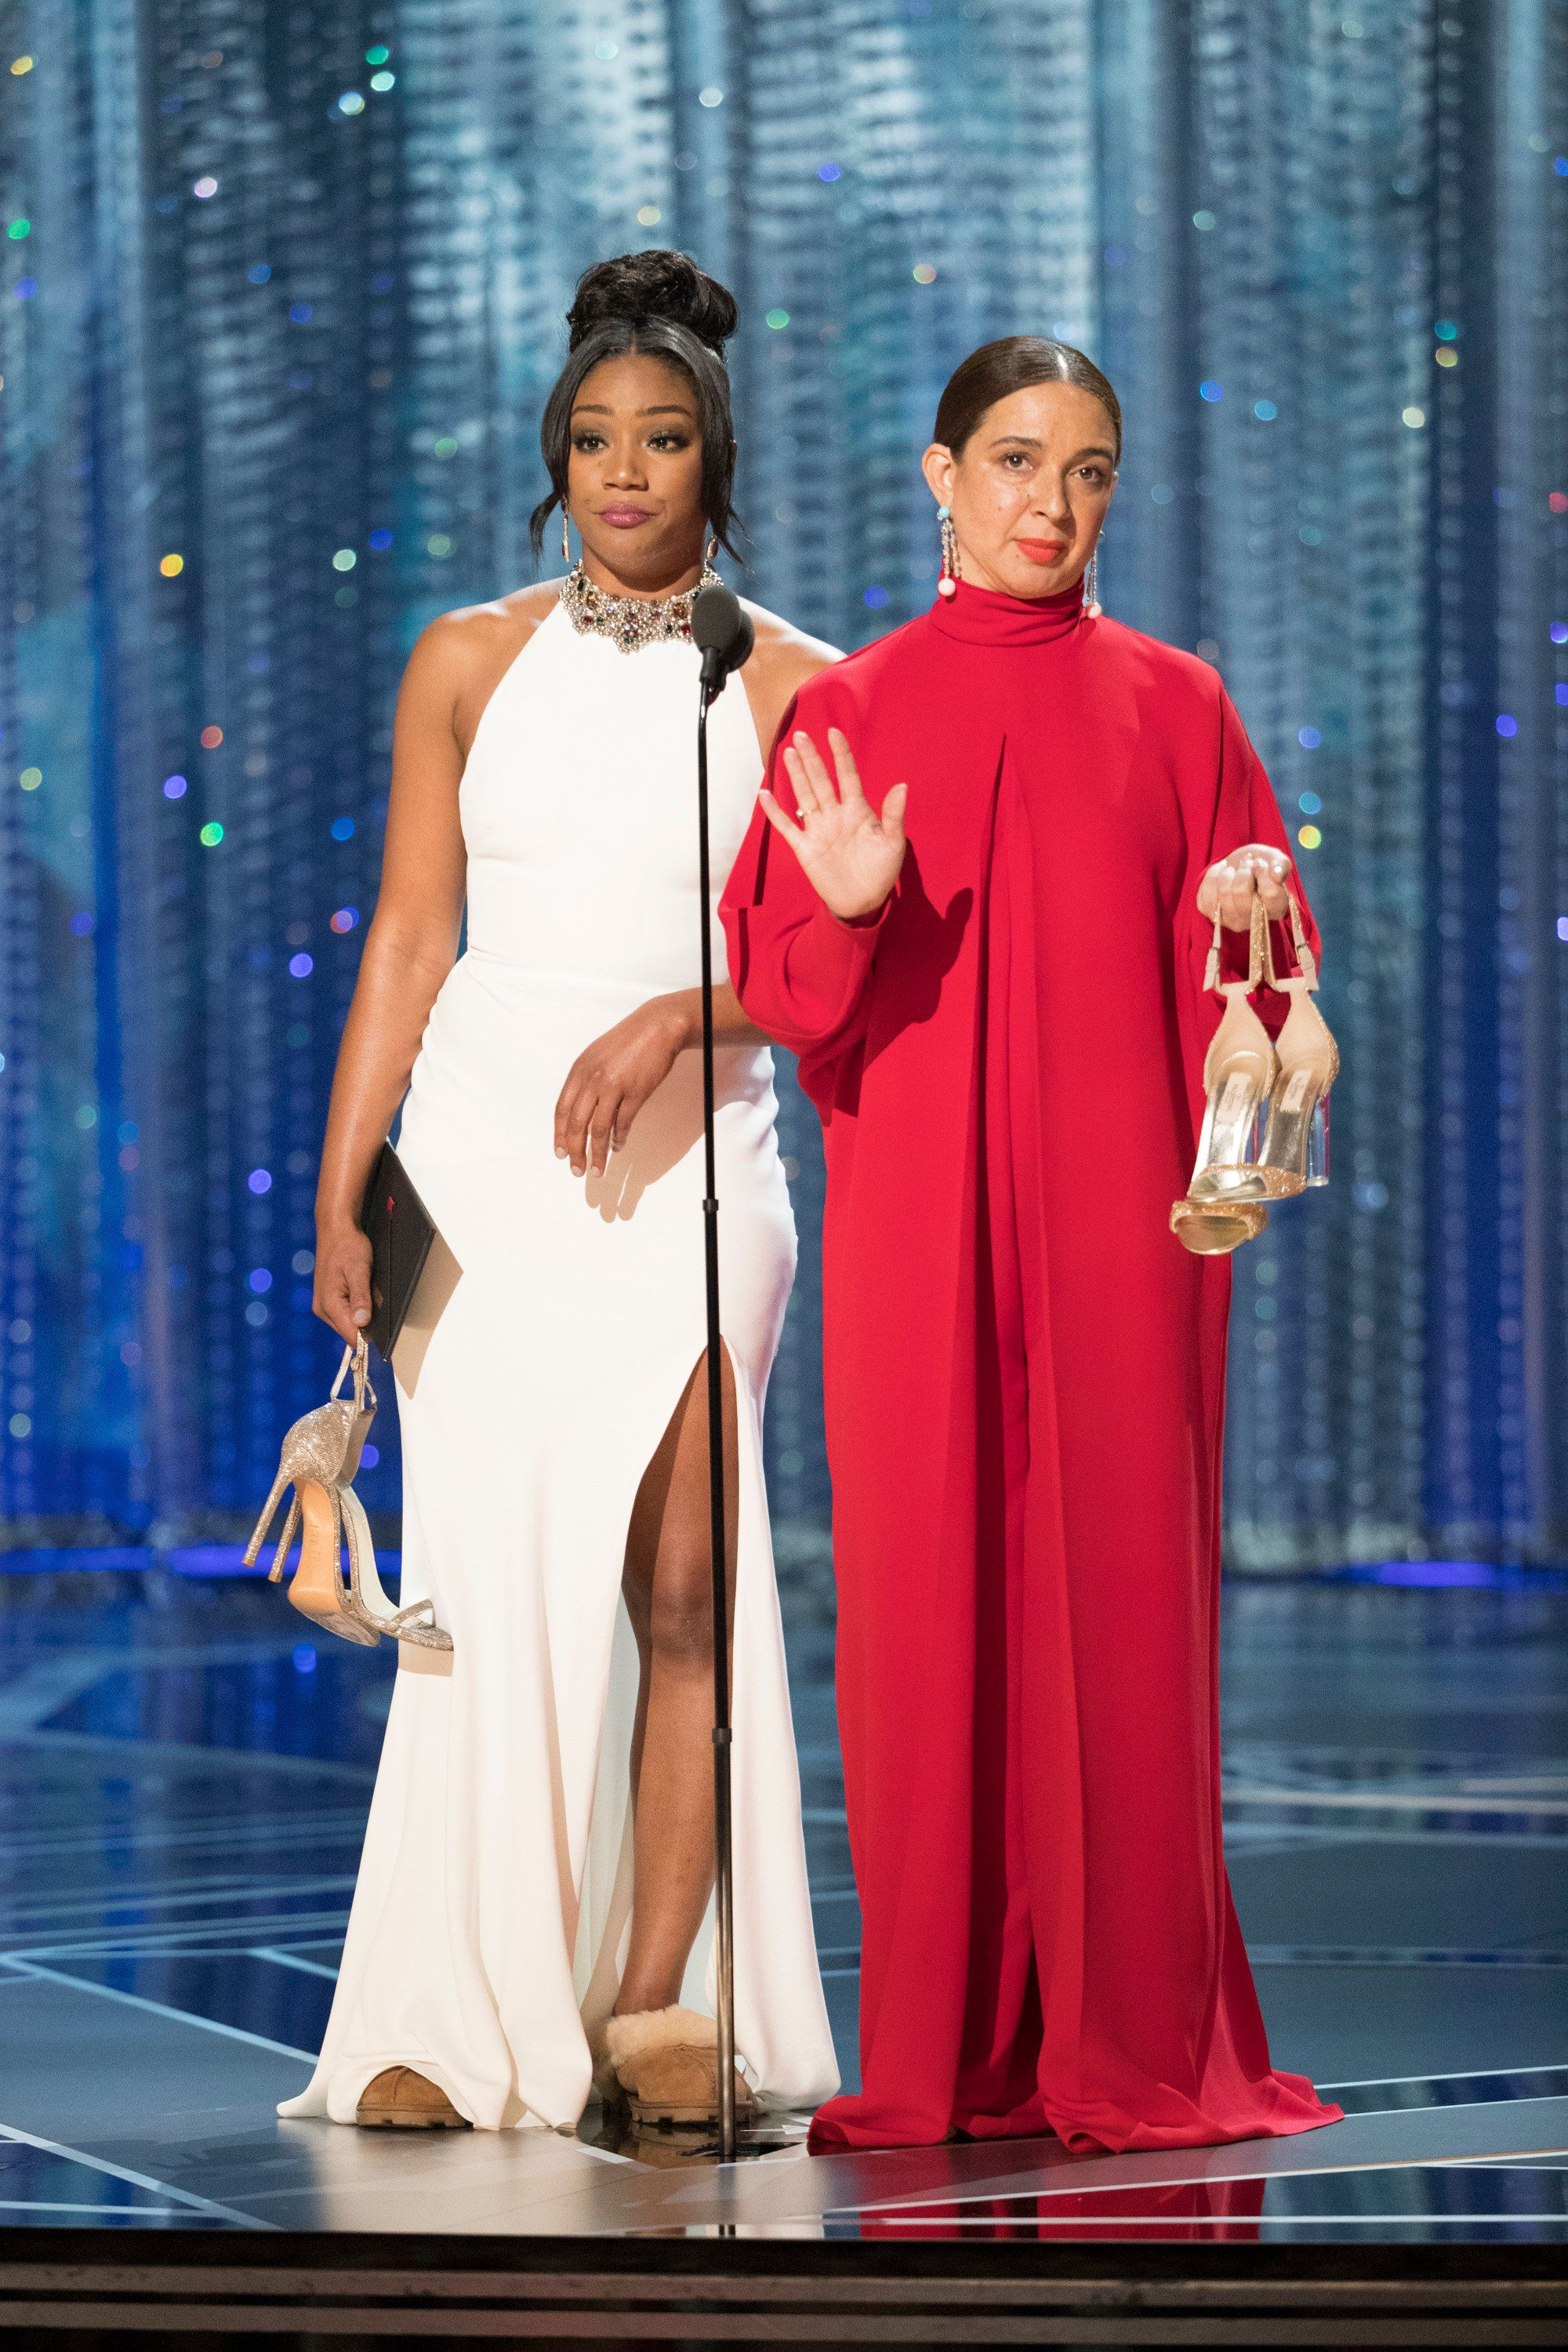 Tiffany Haddish Was Determined To Get Her Money's Worth By Wearing The Same Dress At The